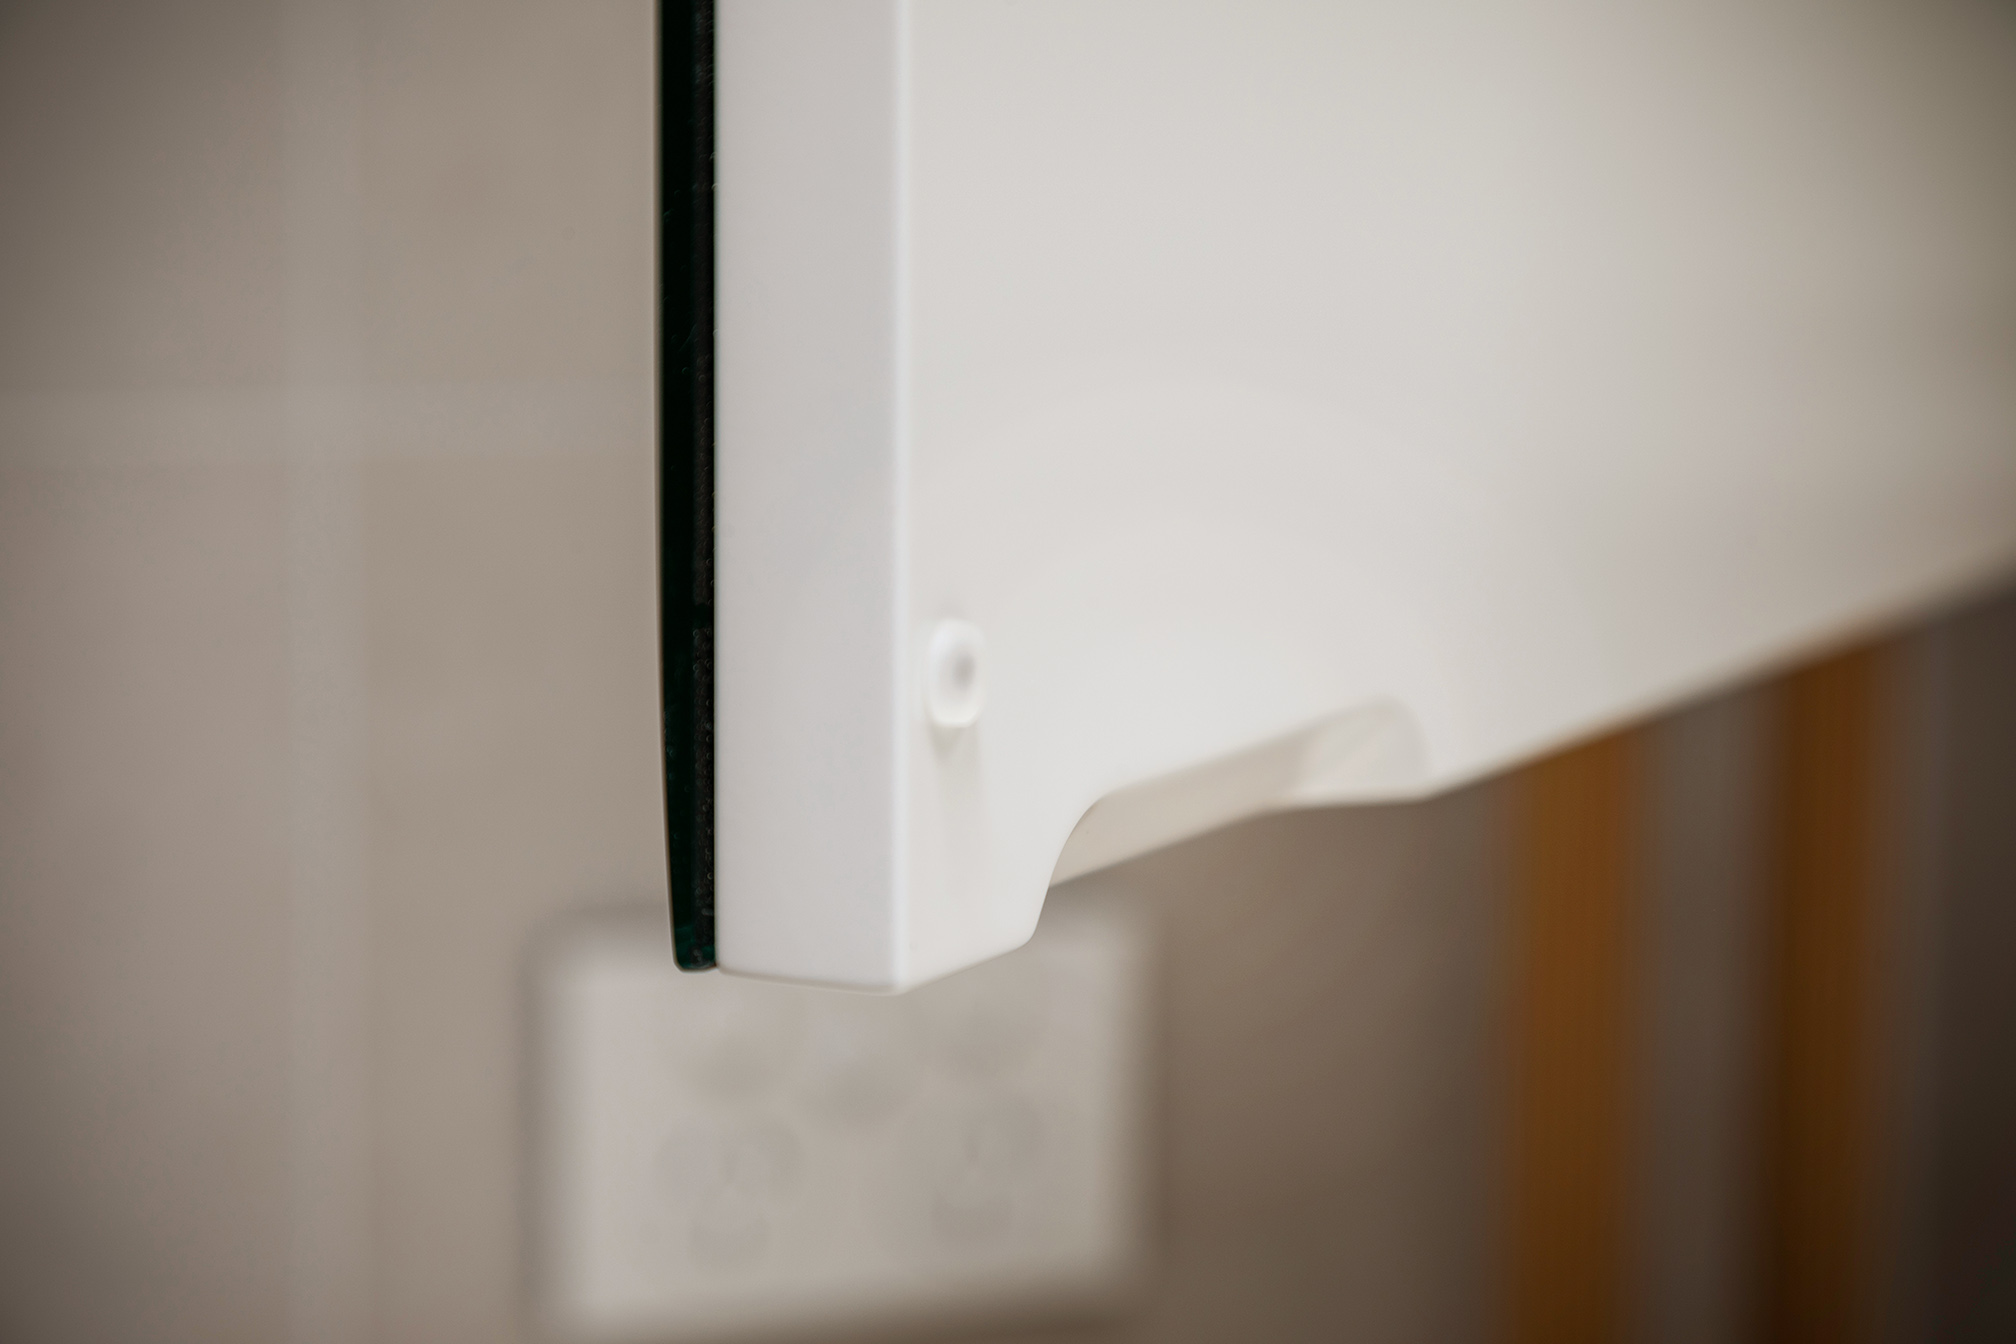 Mount Lawley Traditional Skylit Ensuite - Close up of cabinet pull